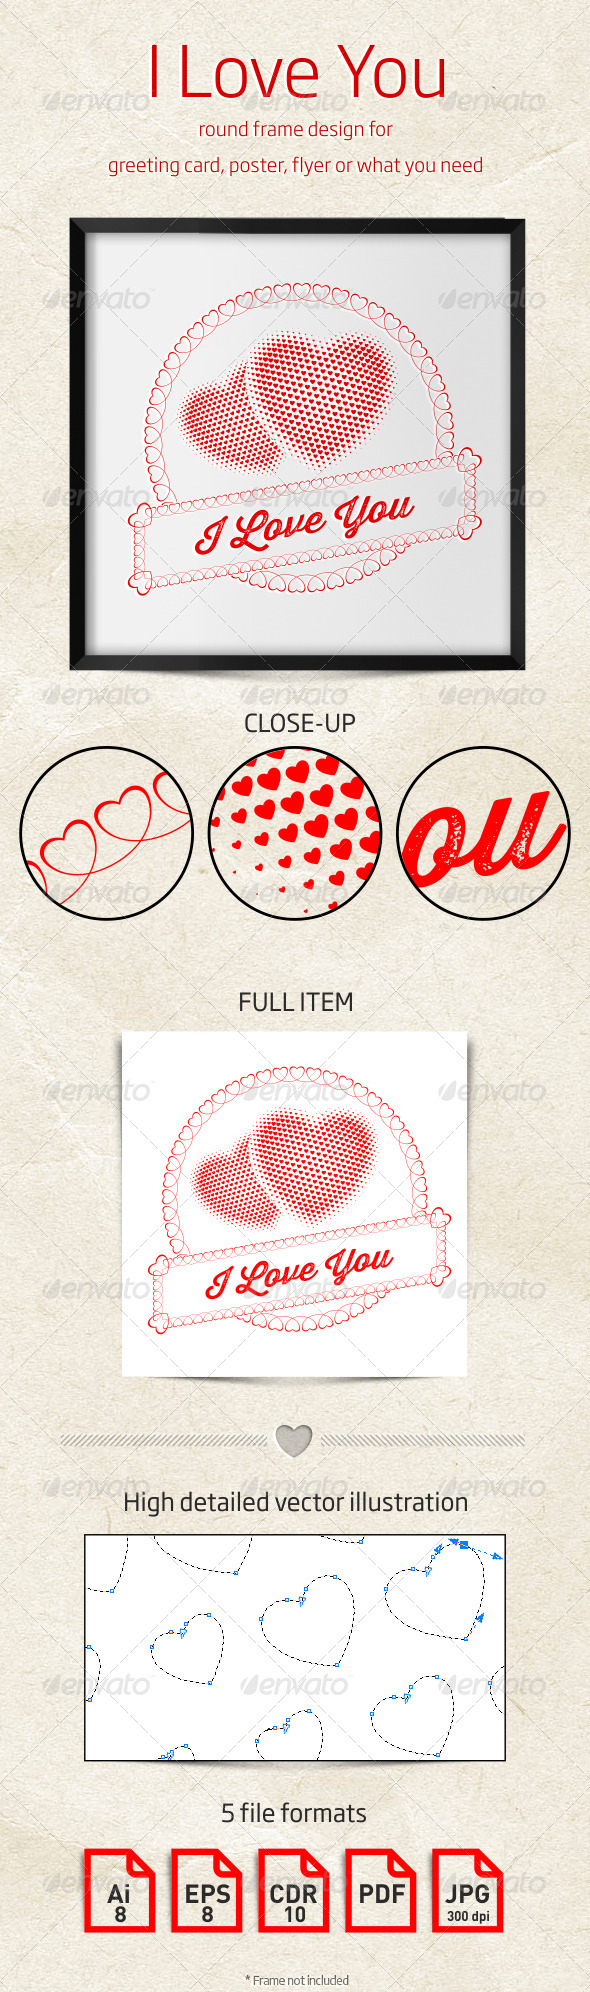 GraphicRiver I Love You Round Frame Design 3952381